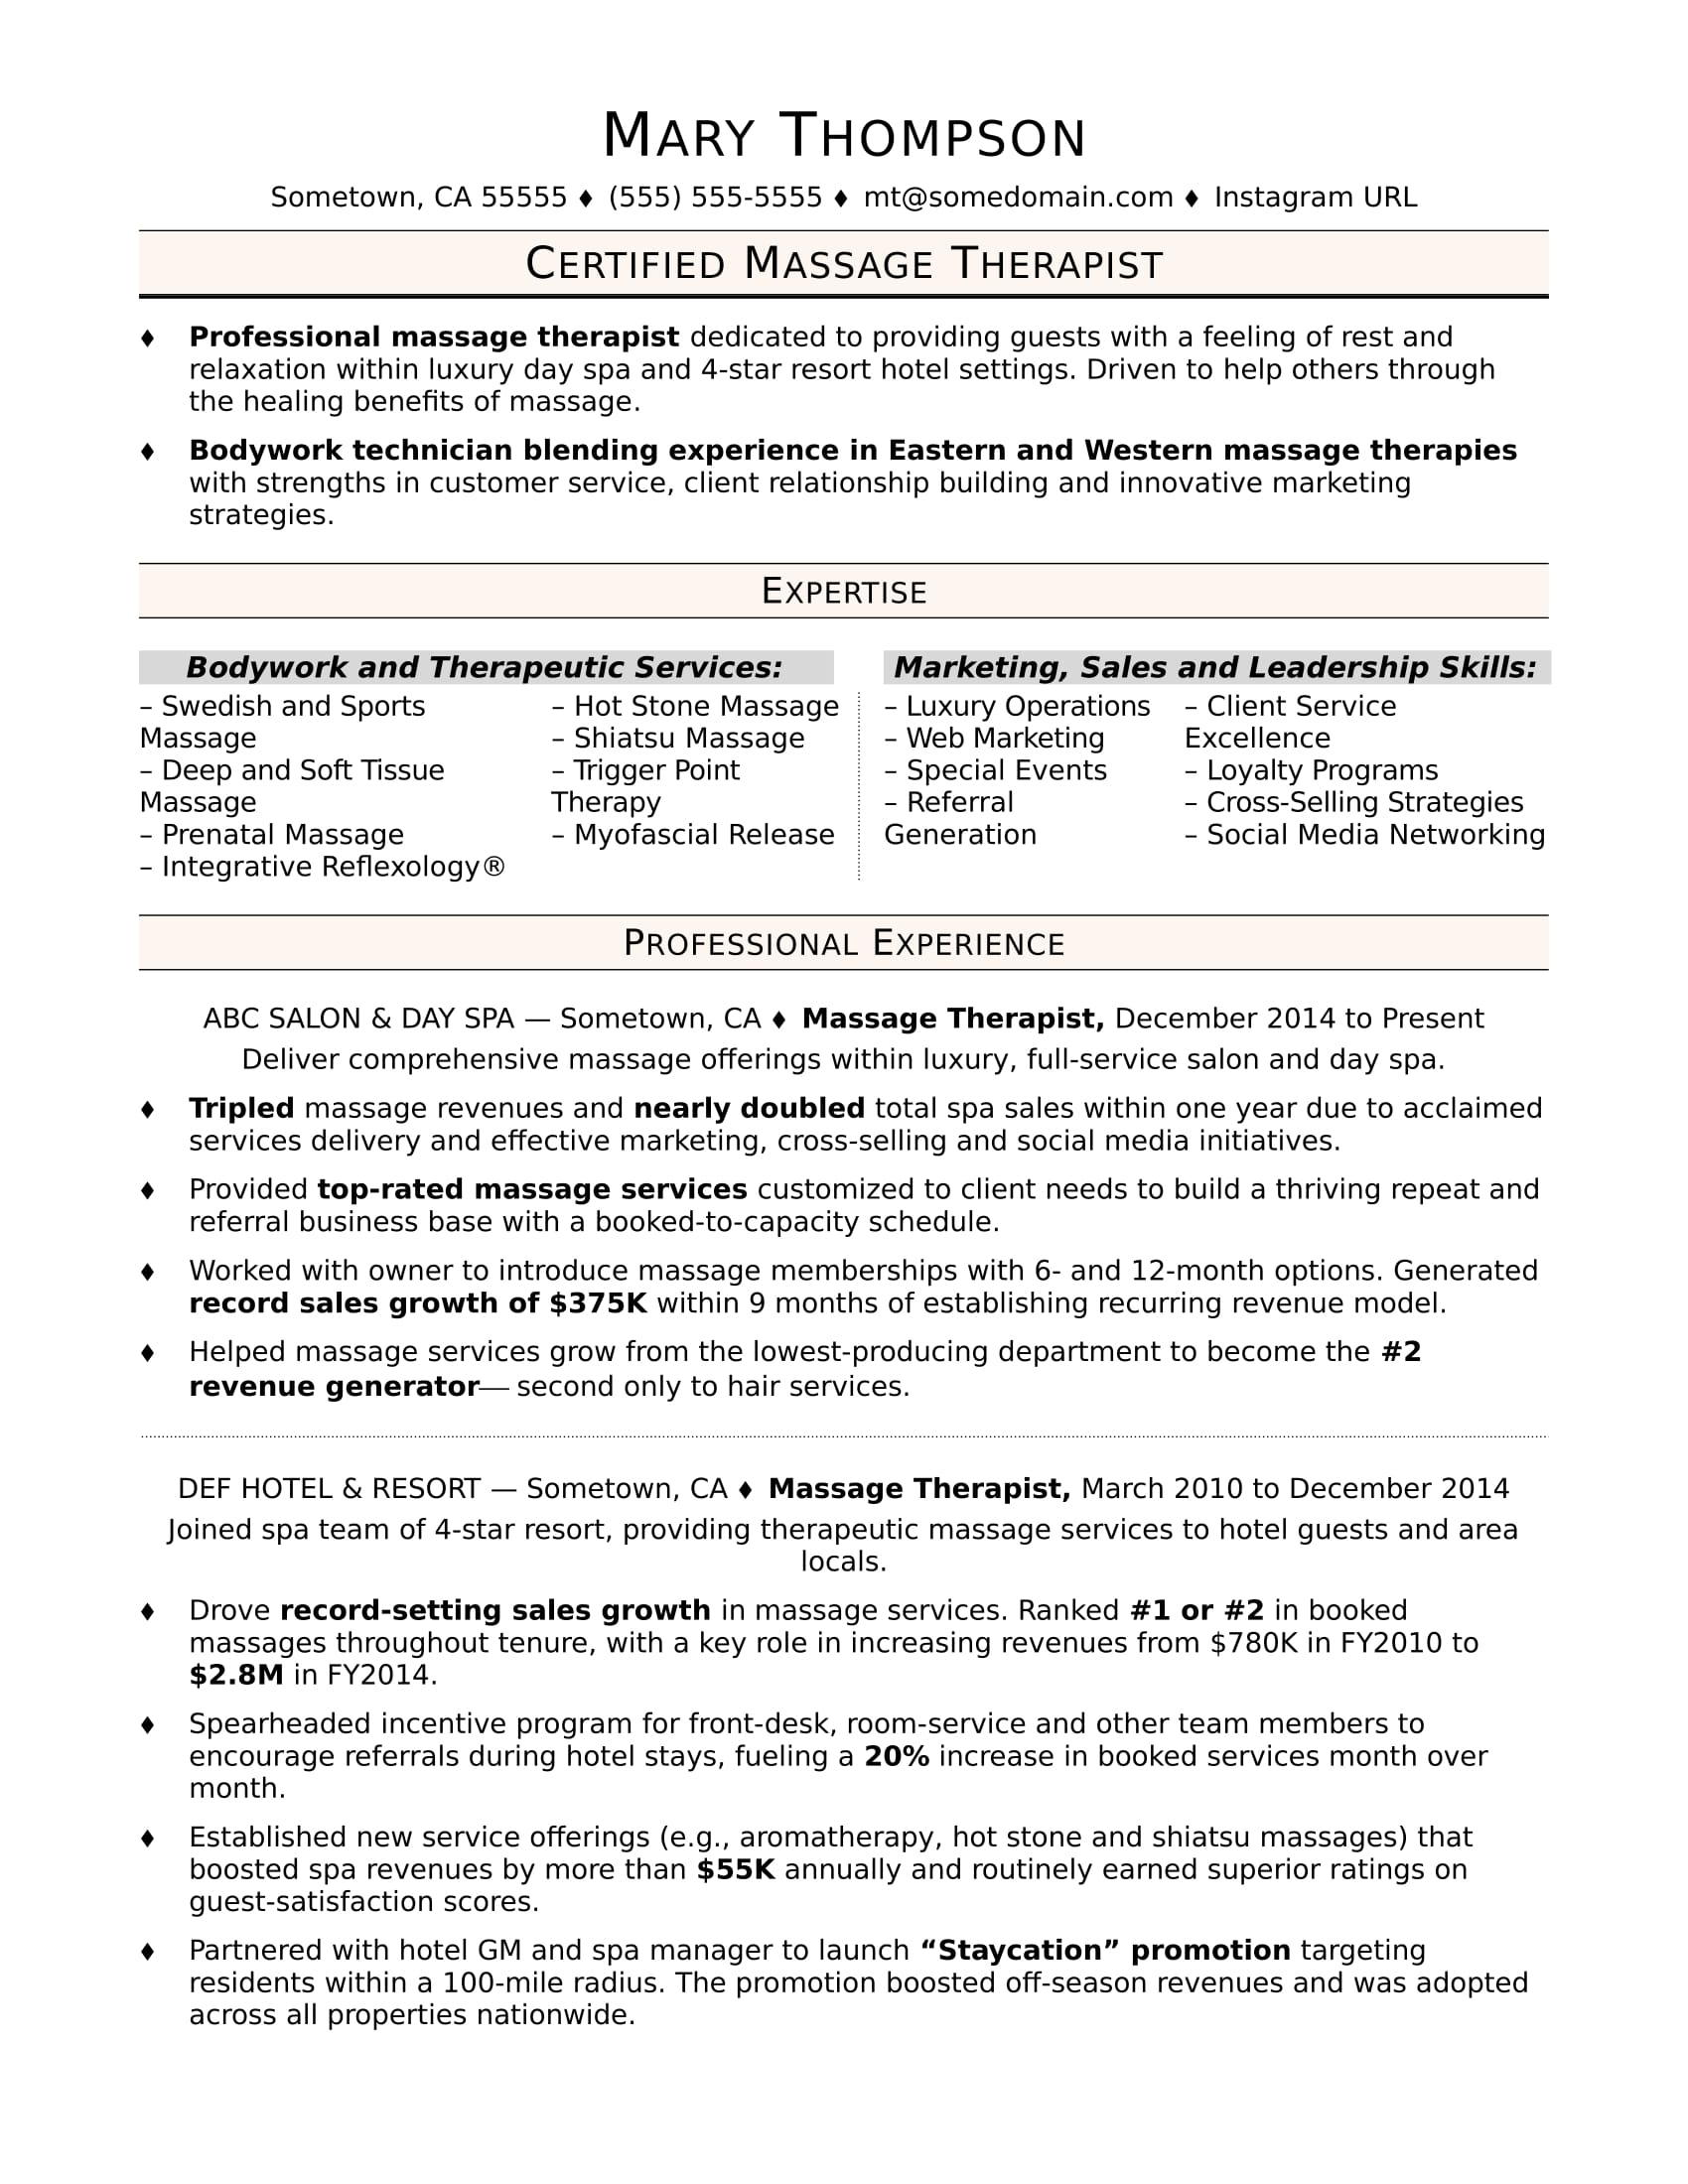 Massage Therapist Resume Sample  Resume Model